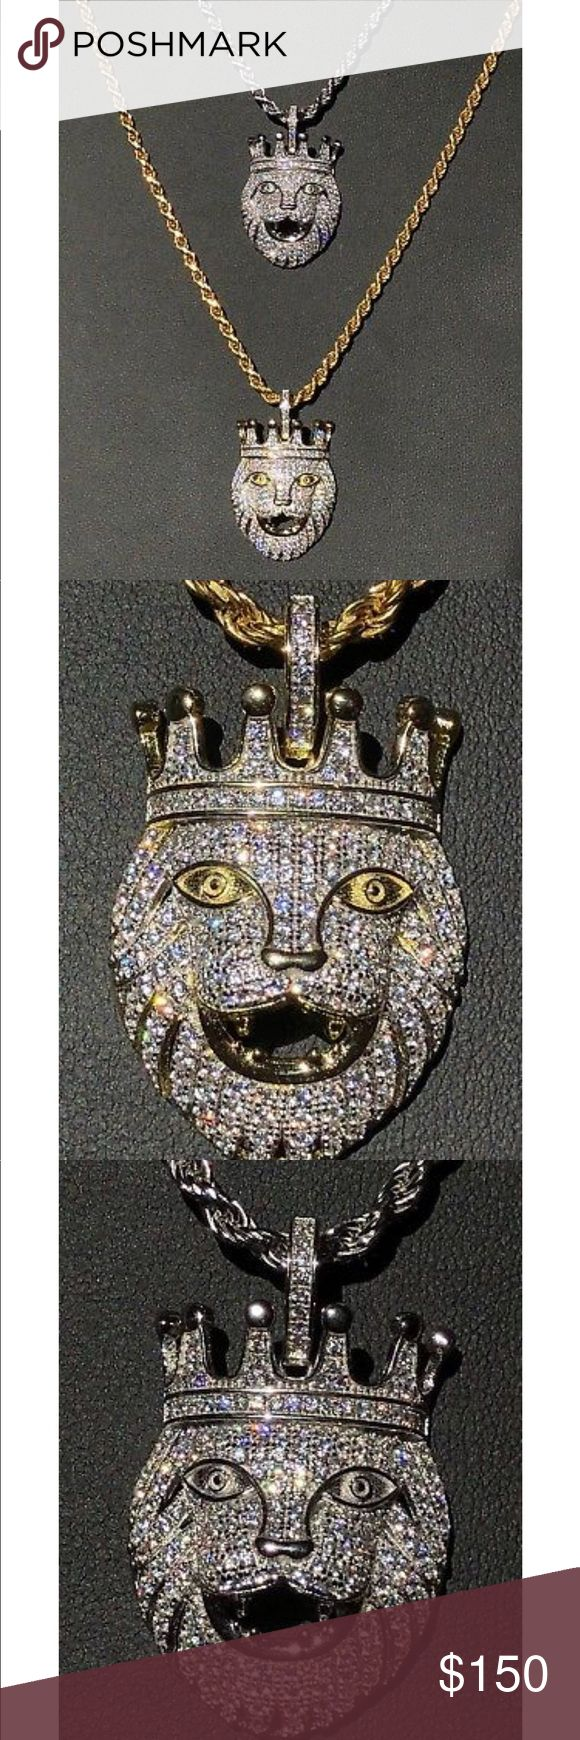 "Lion W. Crown 14k Gold & Solid 925 Sterling Silver Lion W. Crown 14k Gold & Solid 925 Sterling Silver Pendant 1.5ct Lab Diamond LEO.                                             Lengths matching rope chain - 22"" 24"" 26"" 28"".                  Colors - 14k white or yellow gold finish Accessories Jewelry"